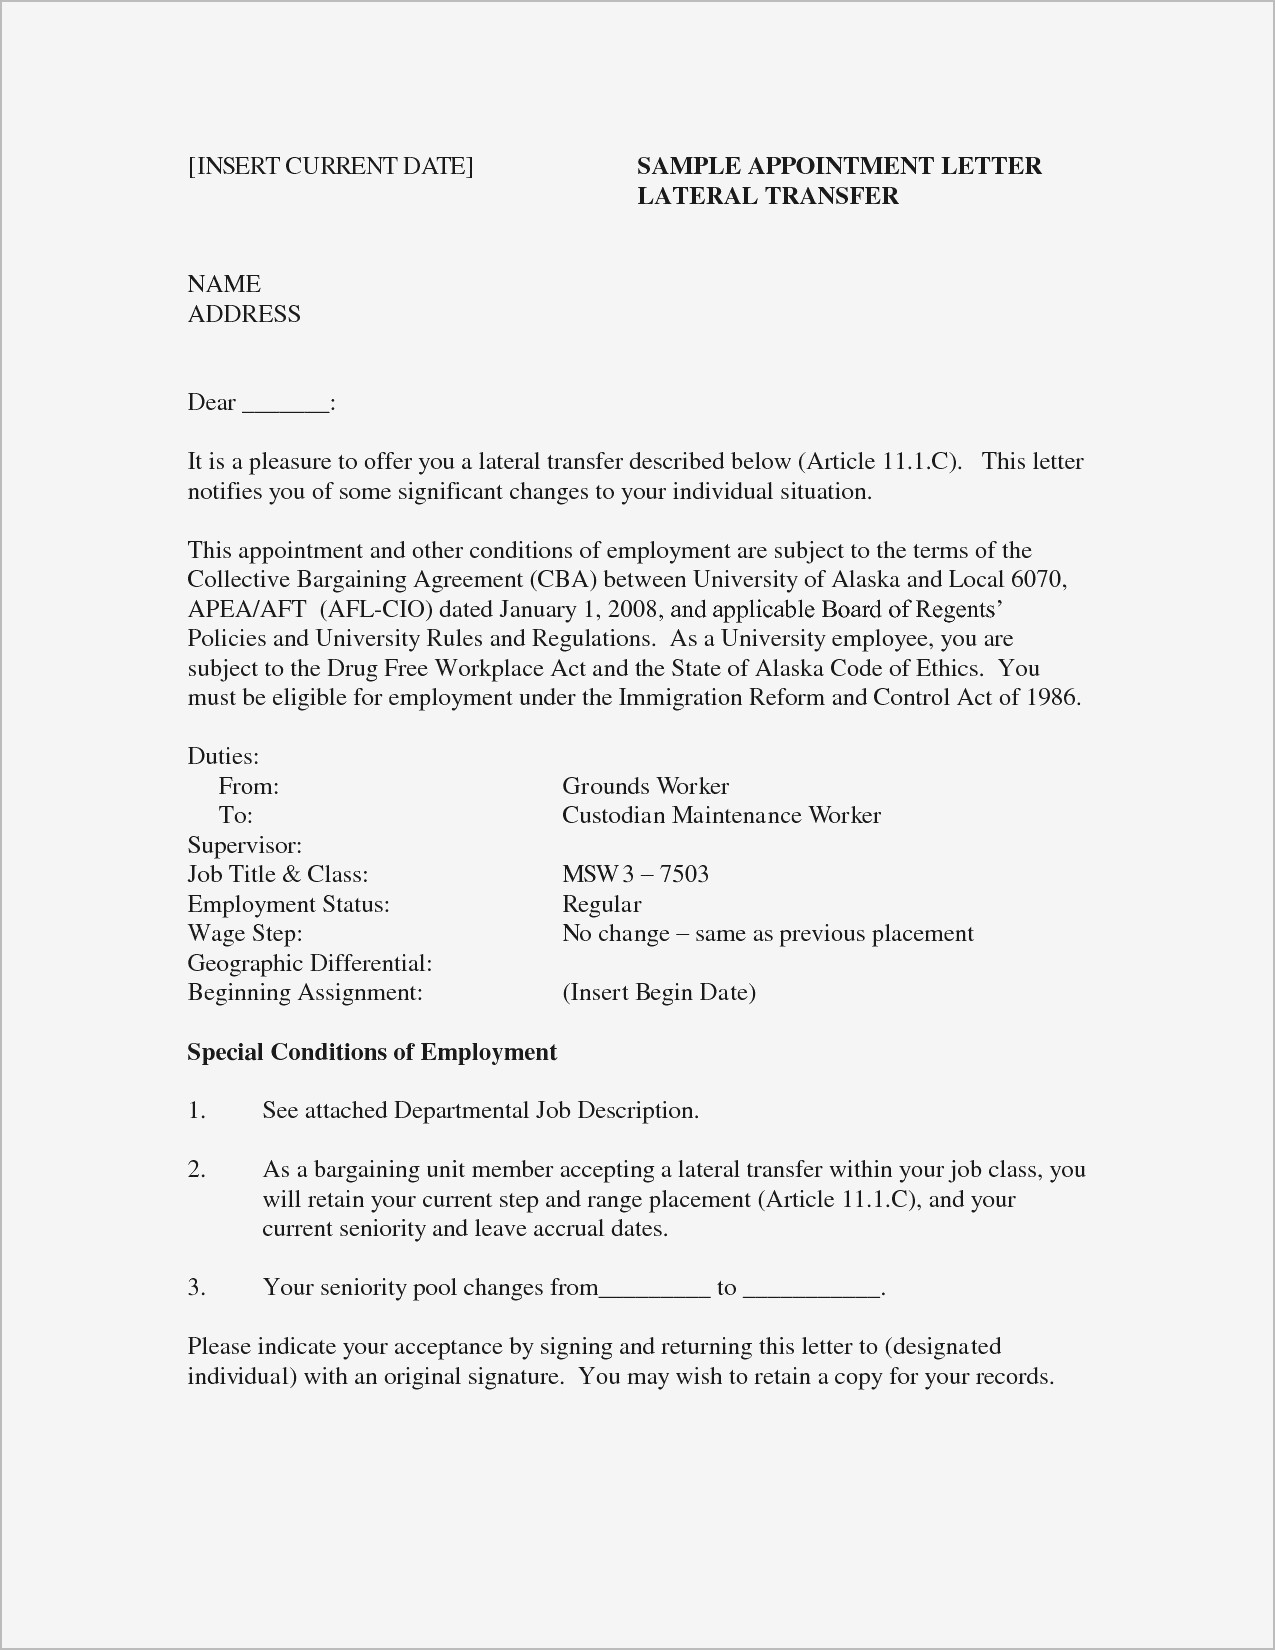 Customer Service Cover Letter Template - Customer Service Resume Cover Letter Samples